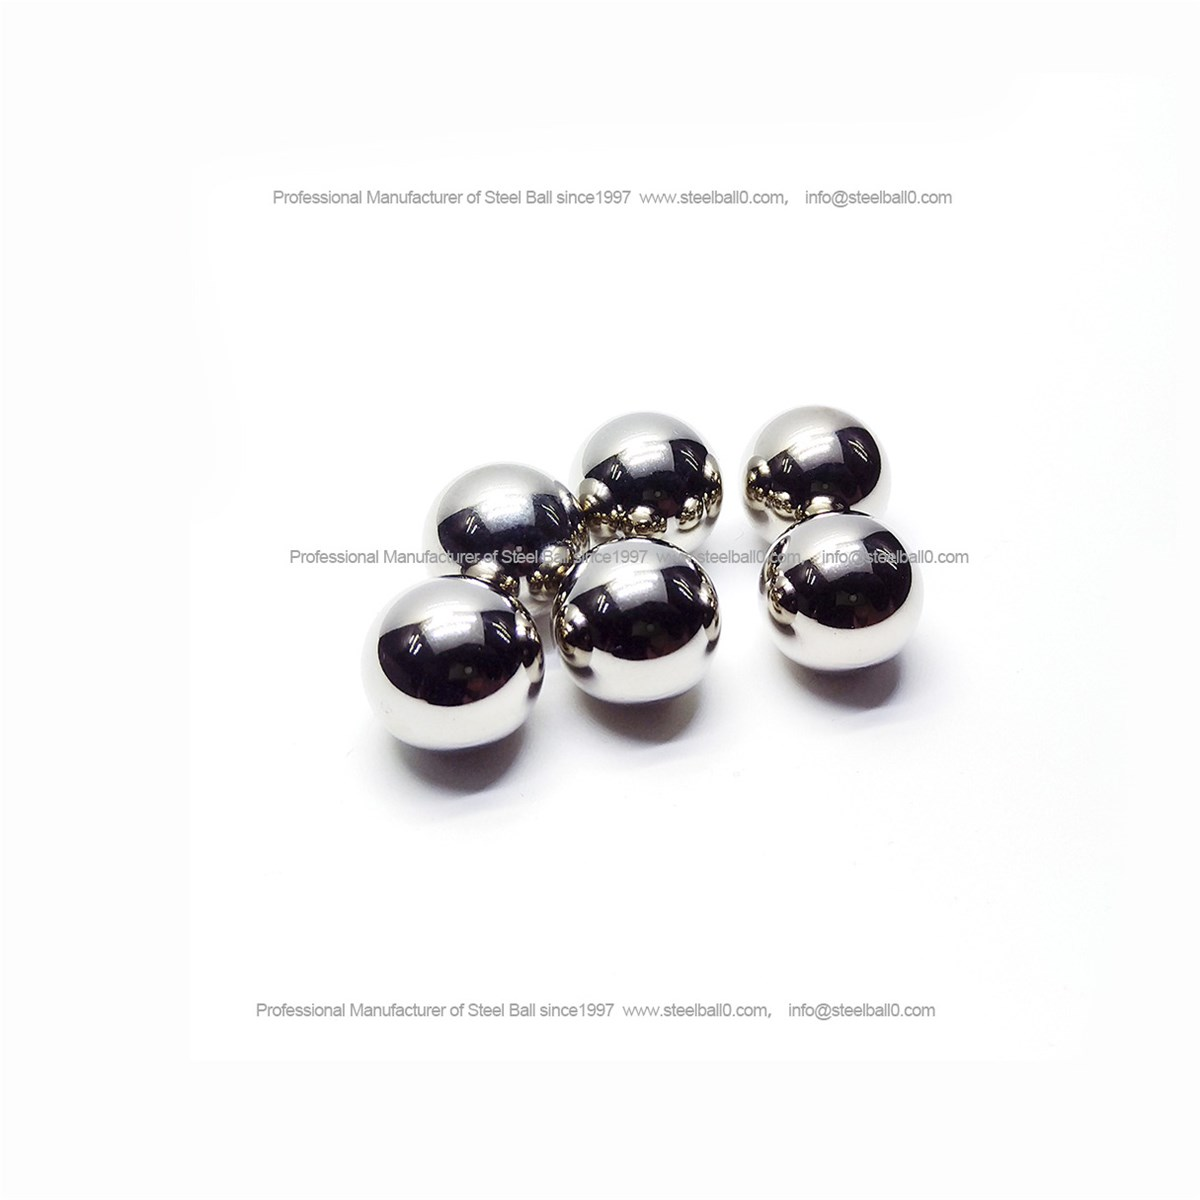 03mm 15mm 1588mm 2381mm 25mm 30mm stainless steel ball